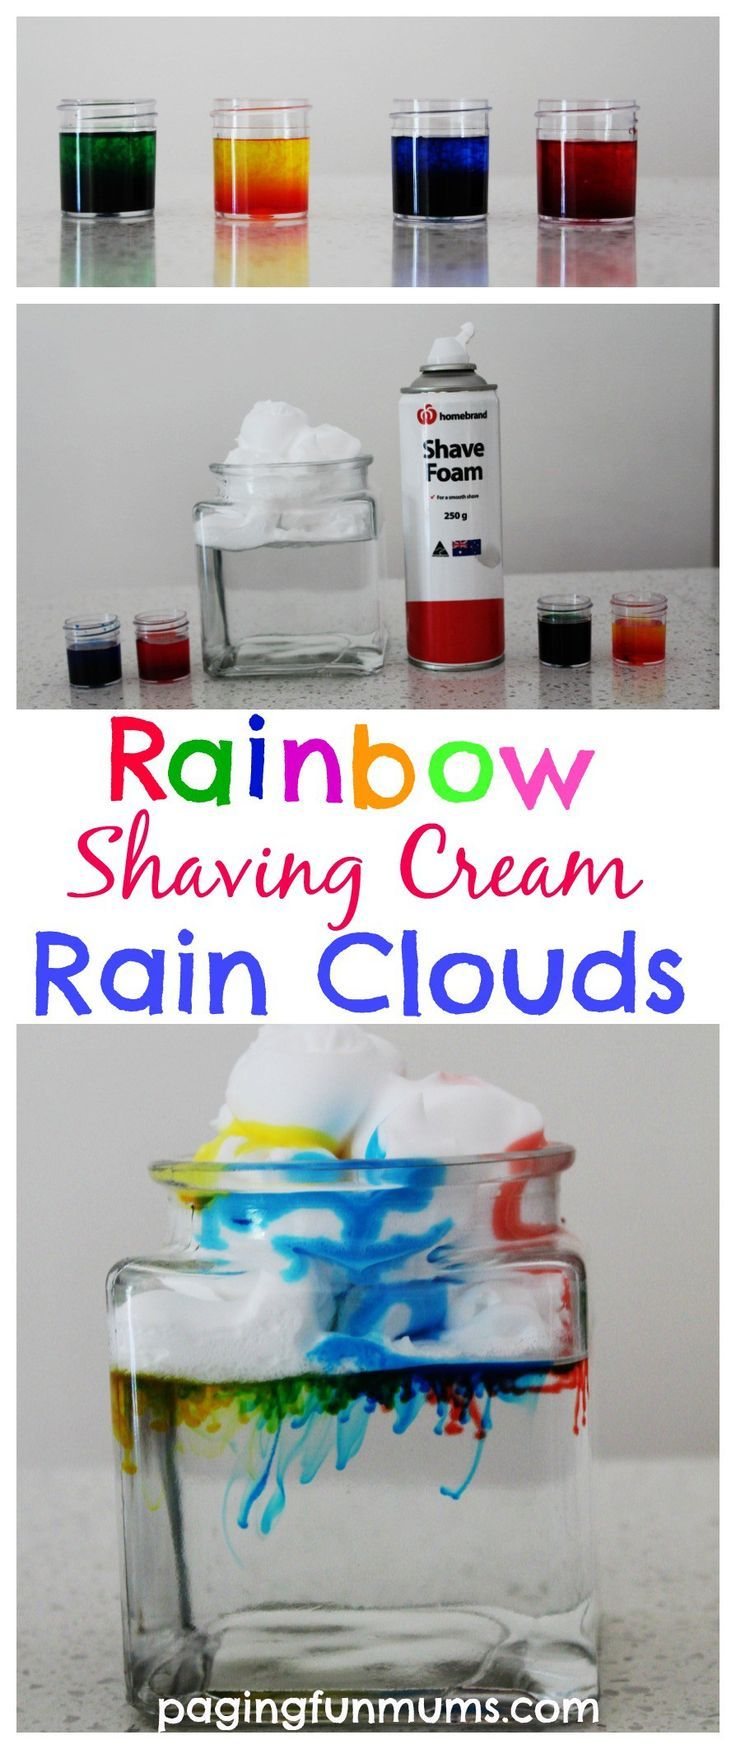 Best 25+ Science experiments ideas on Pinterest | Kid experiments, Science experiments kids and Fun science experiments